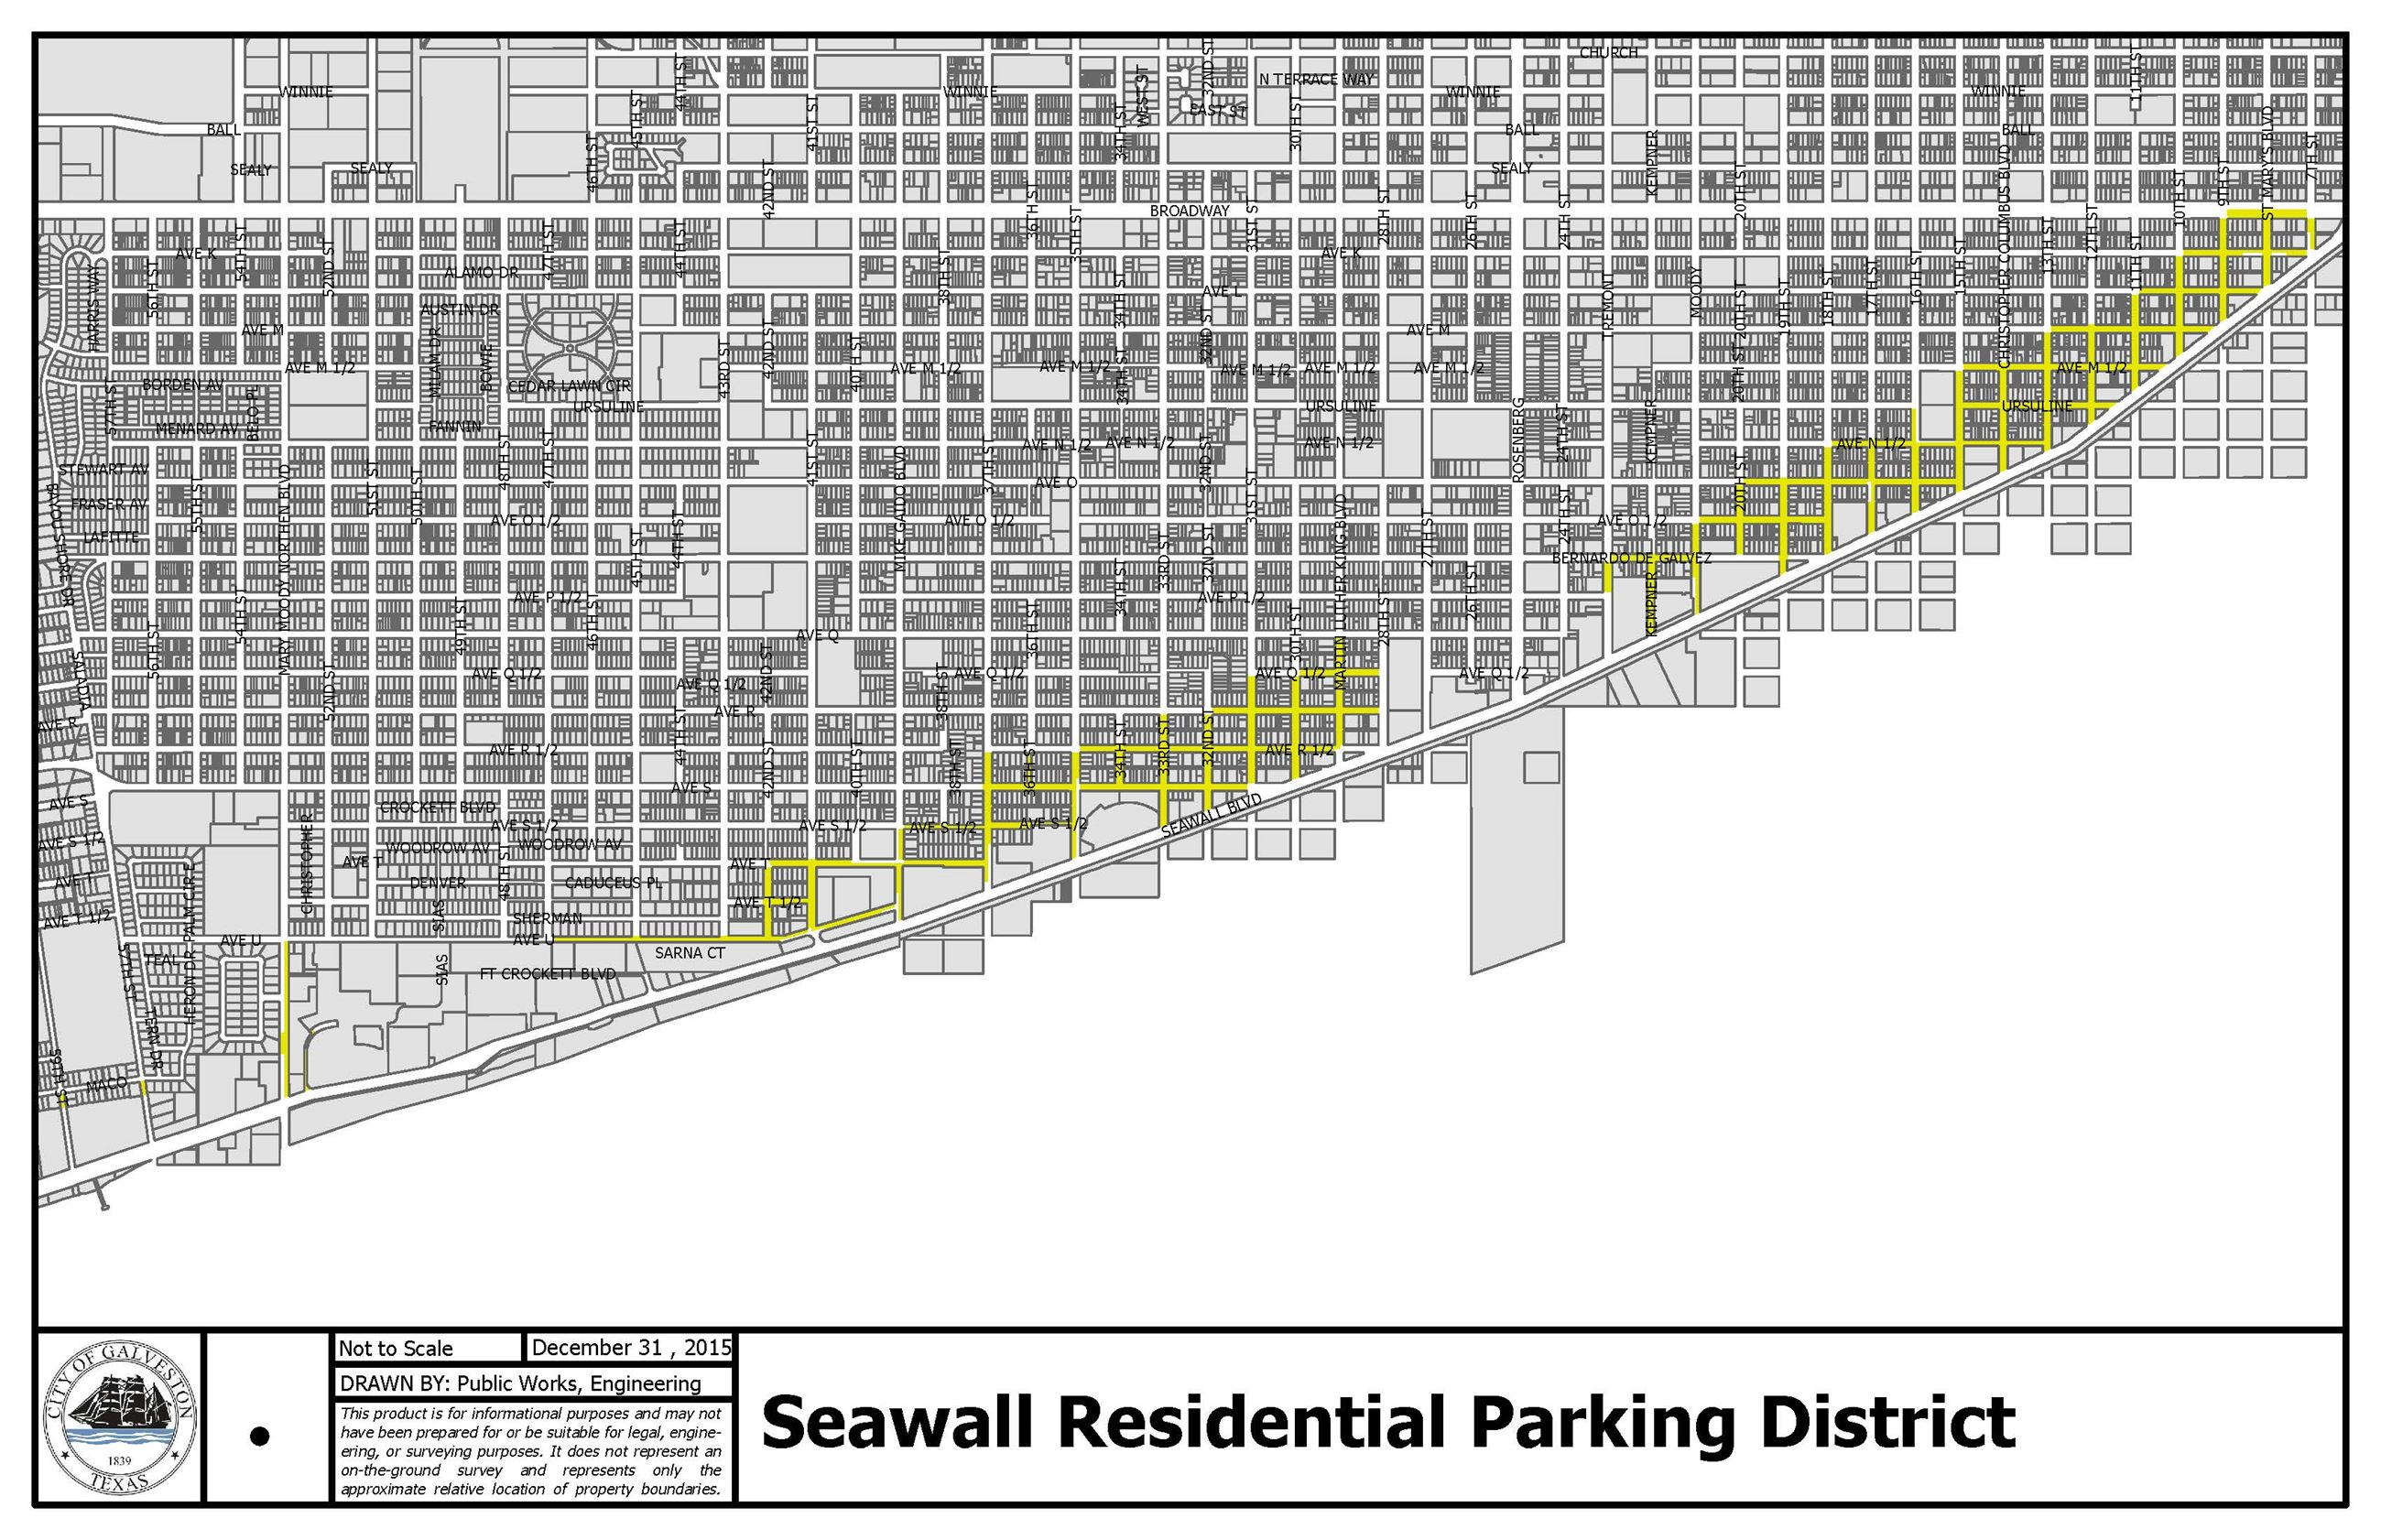 Seawall Res Parking District